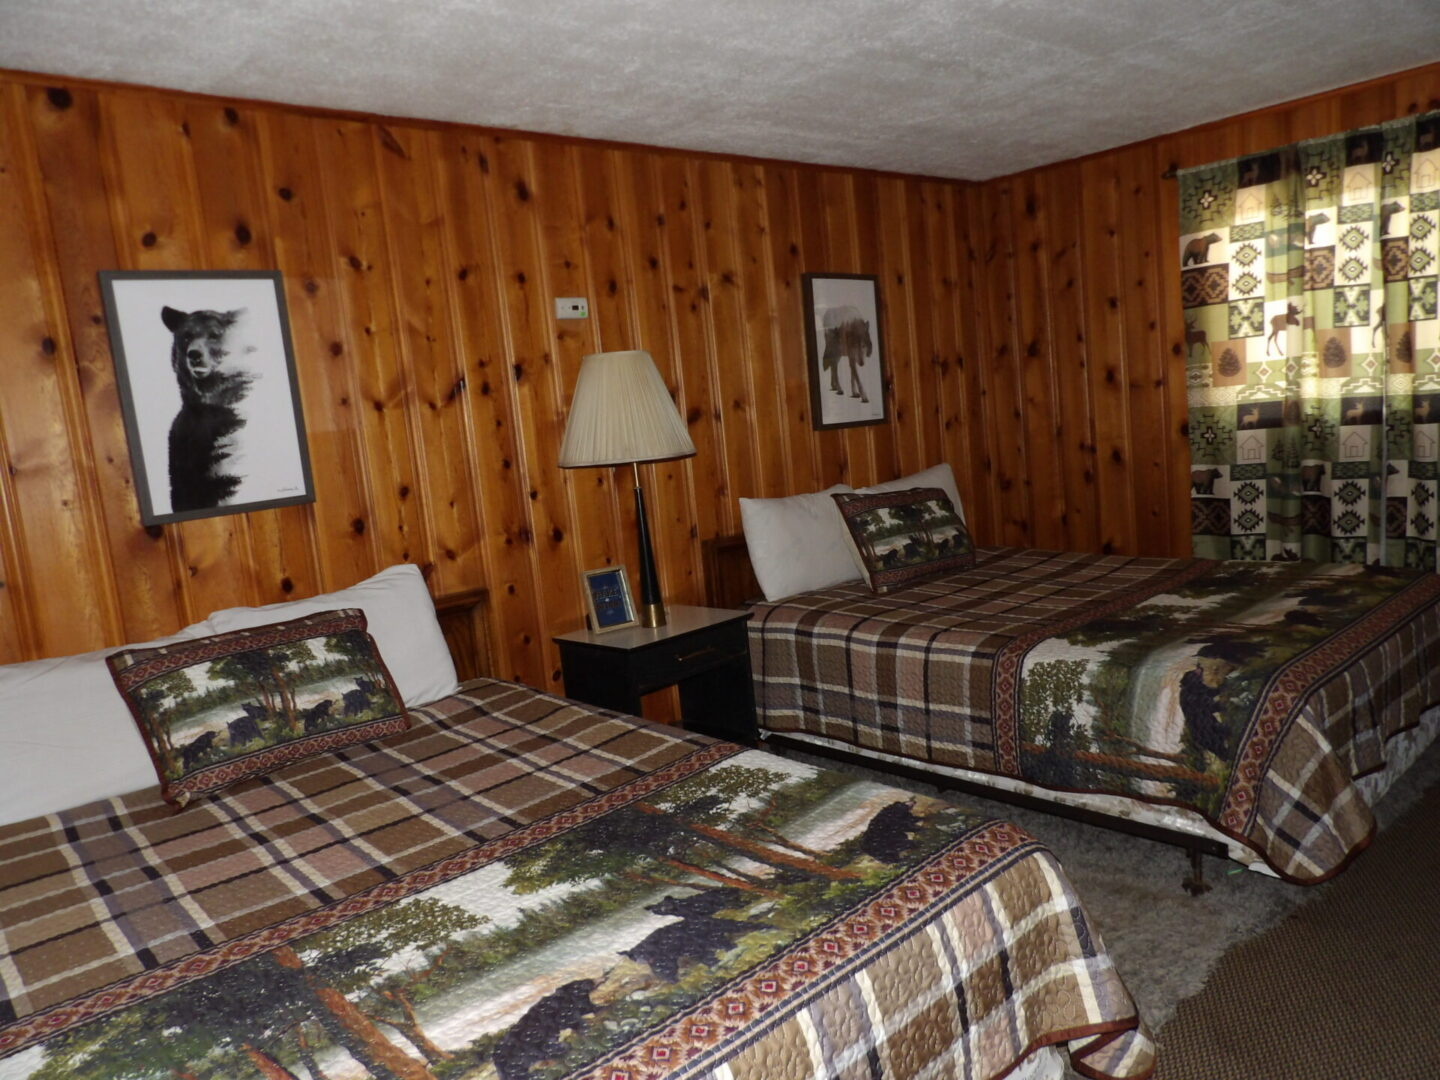 bedroom with bear and moose themes